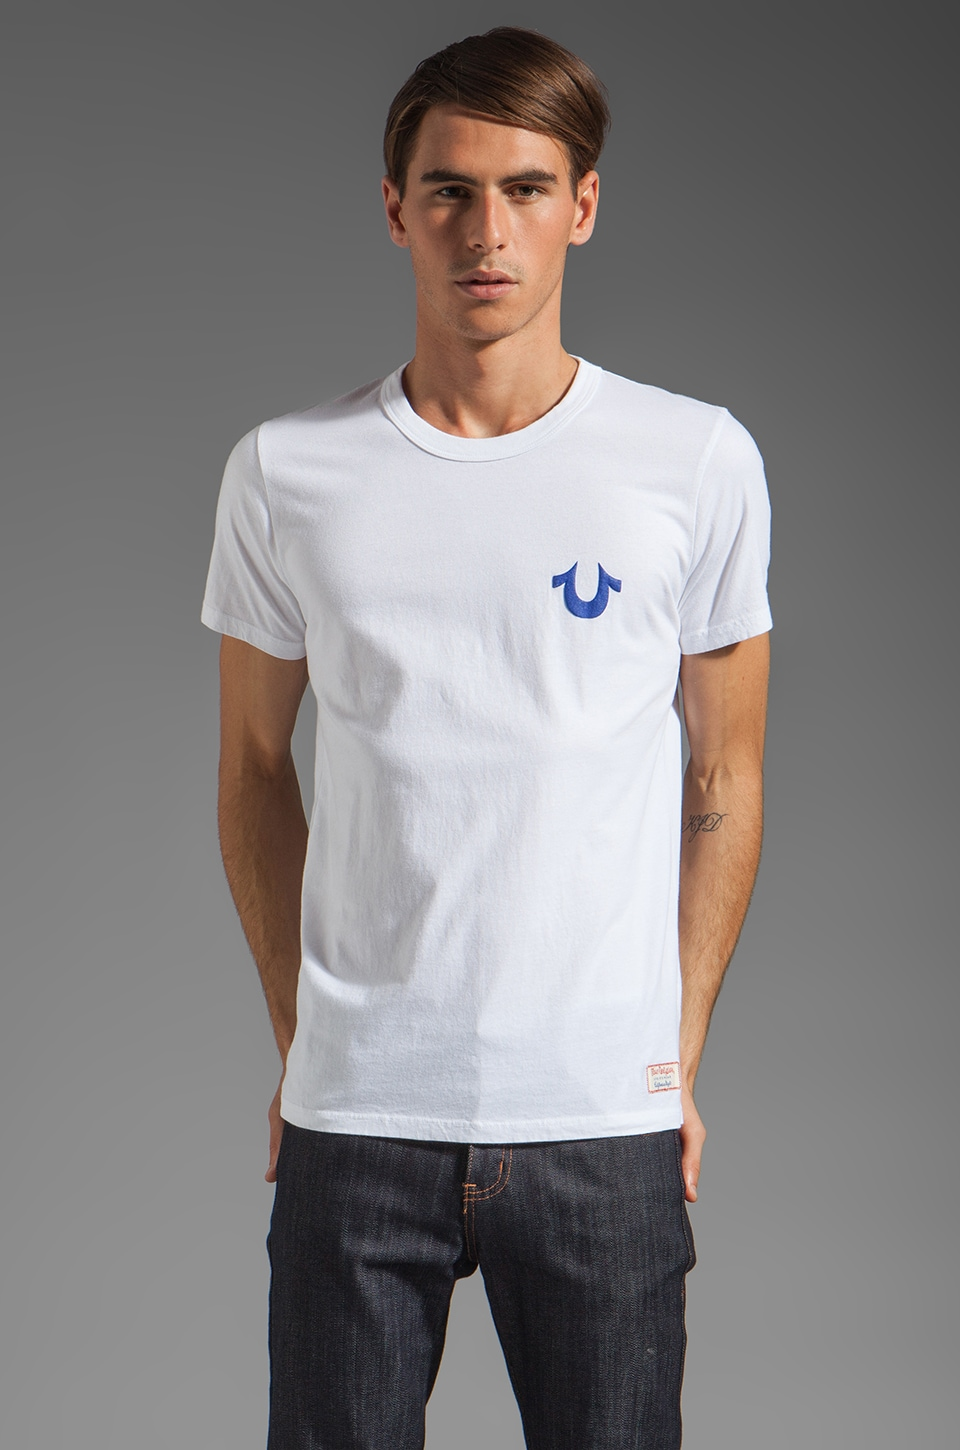 True Religion Puff Tee in White/Royal Blue